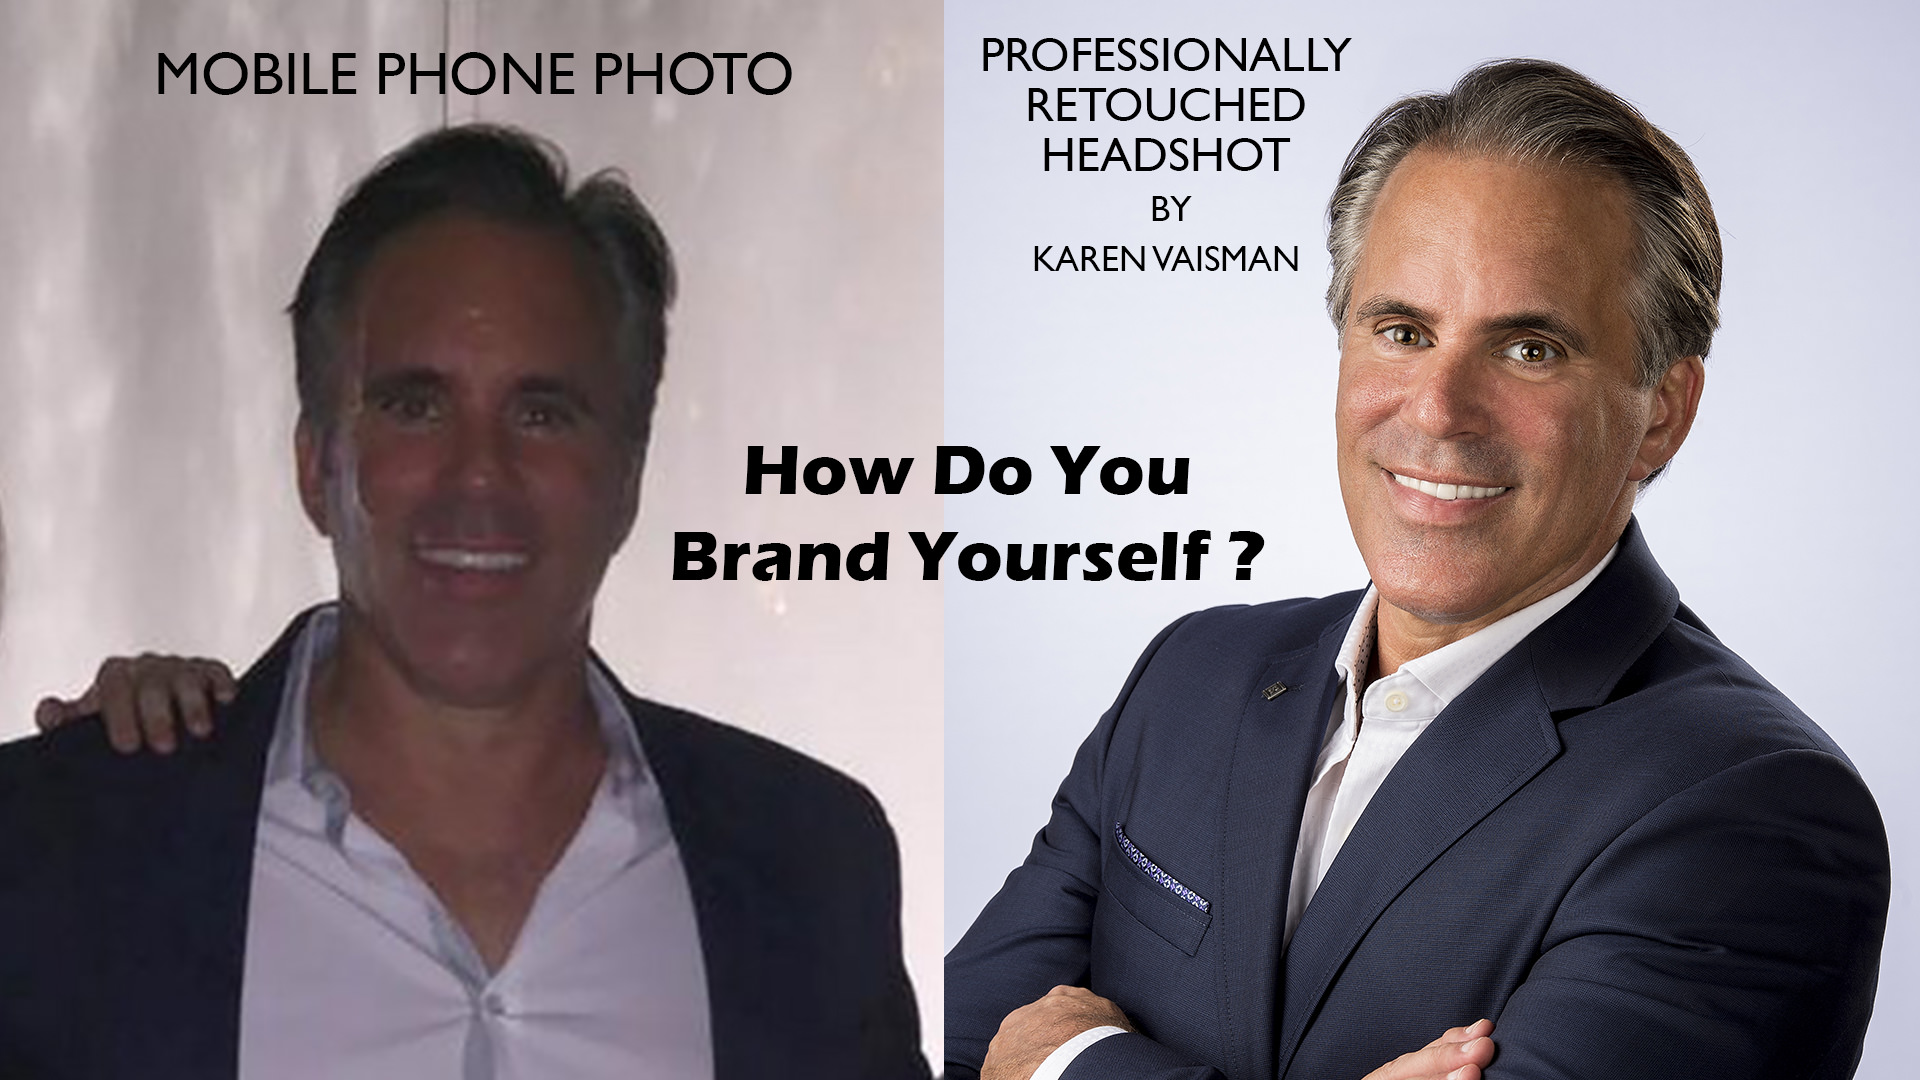 Professional Business Portrait vs Selifie